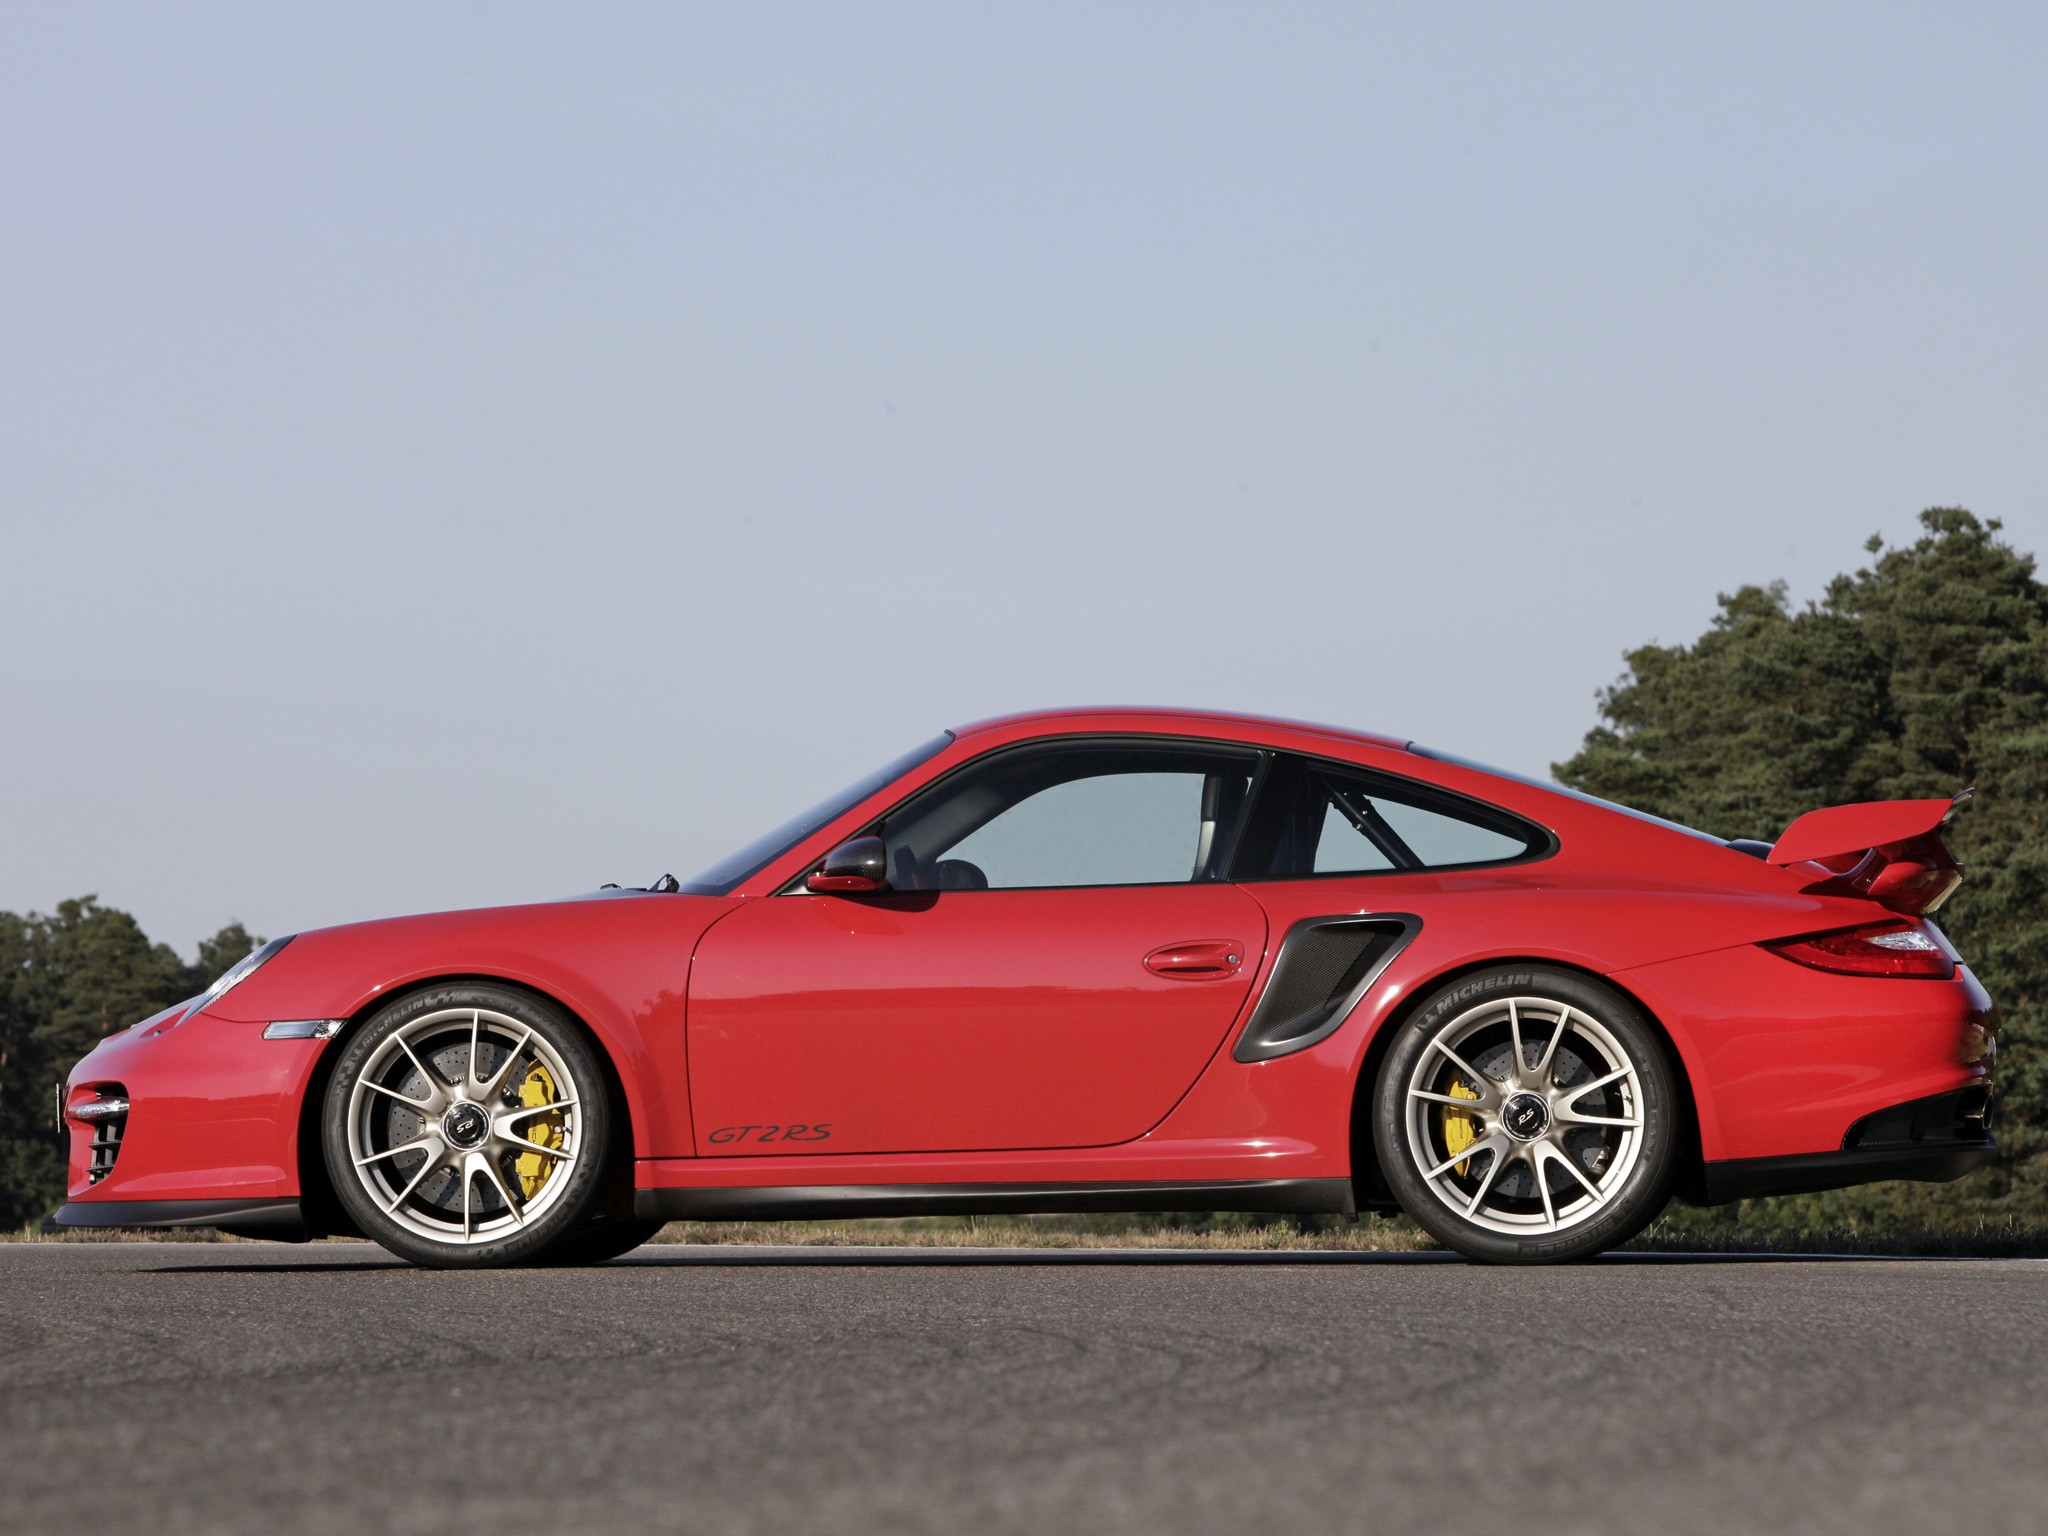 PORSCHE-911-GT2-RS-4327_33 Cozy Porsche 911 Gt2 Rs Wallpaper Cars Trend